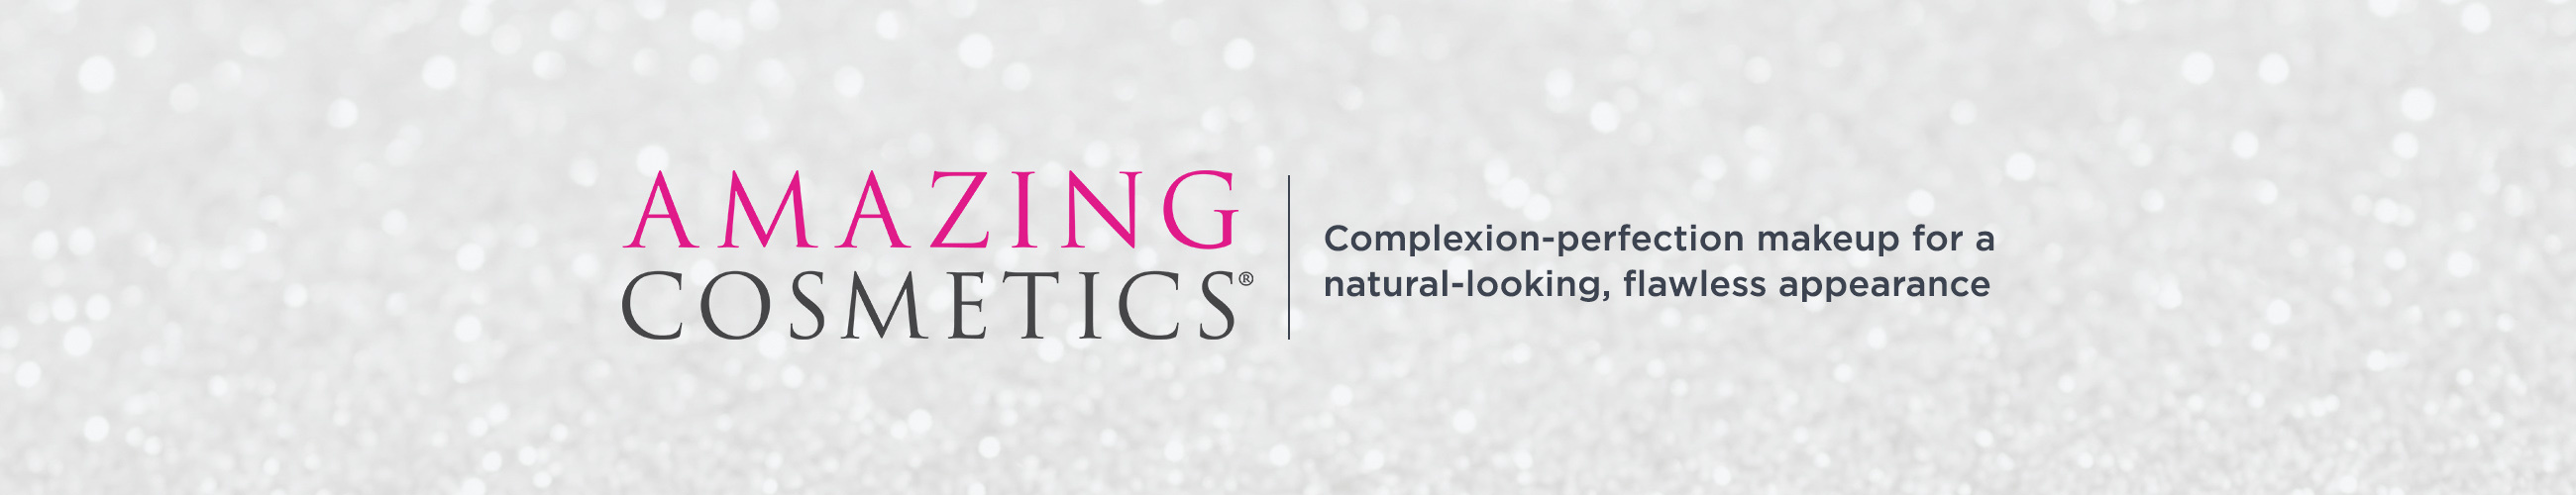 AmazingCosmetics , Complexion-perfecting makeup for a natural-looking, flawless appearance